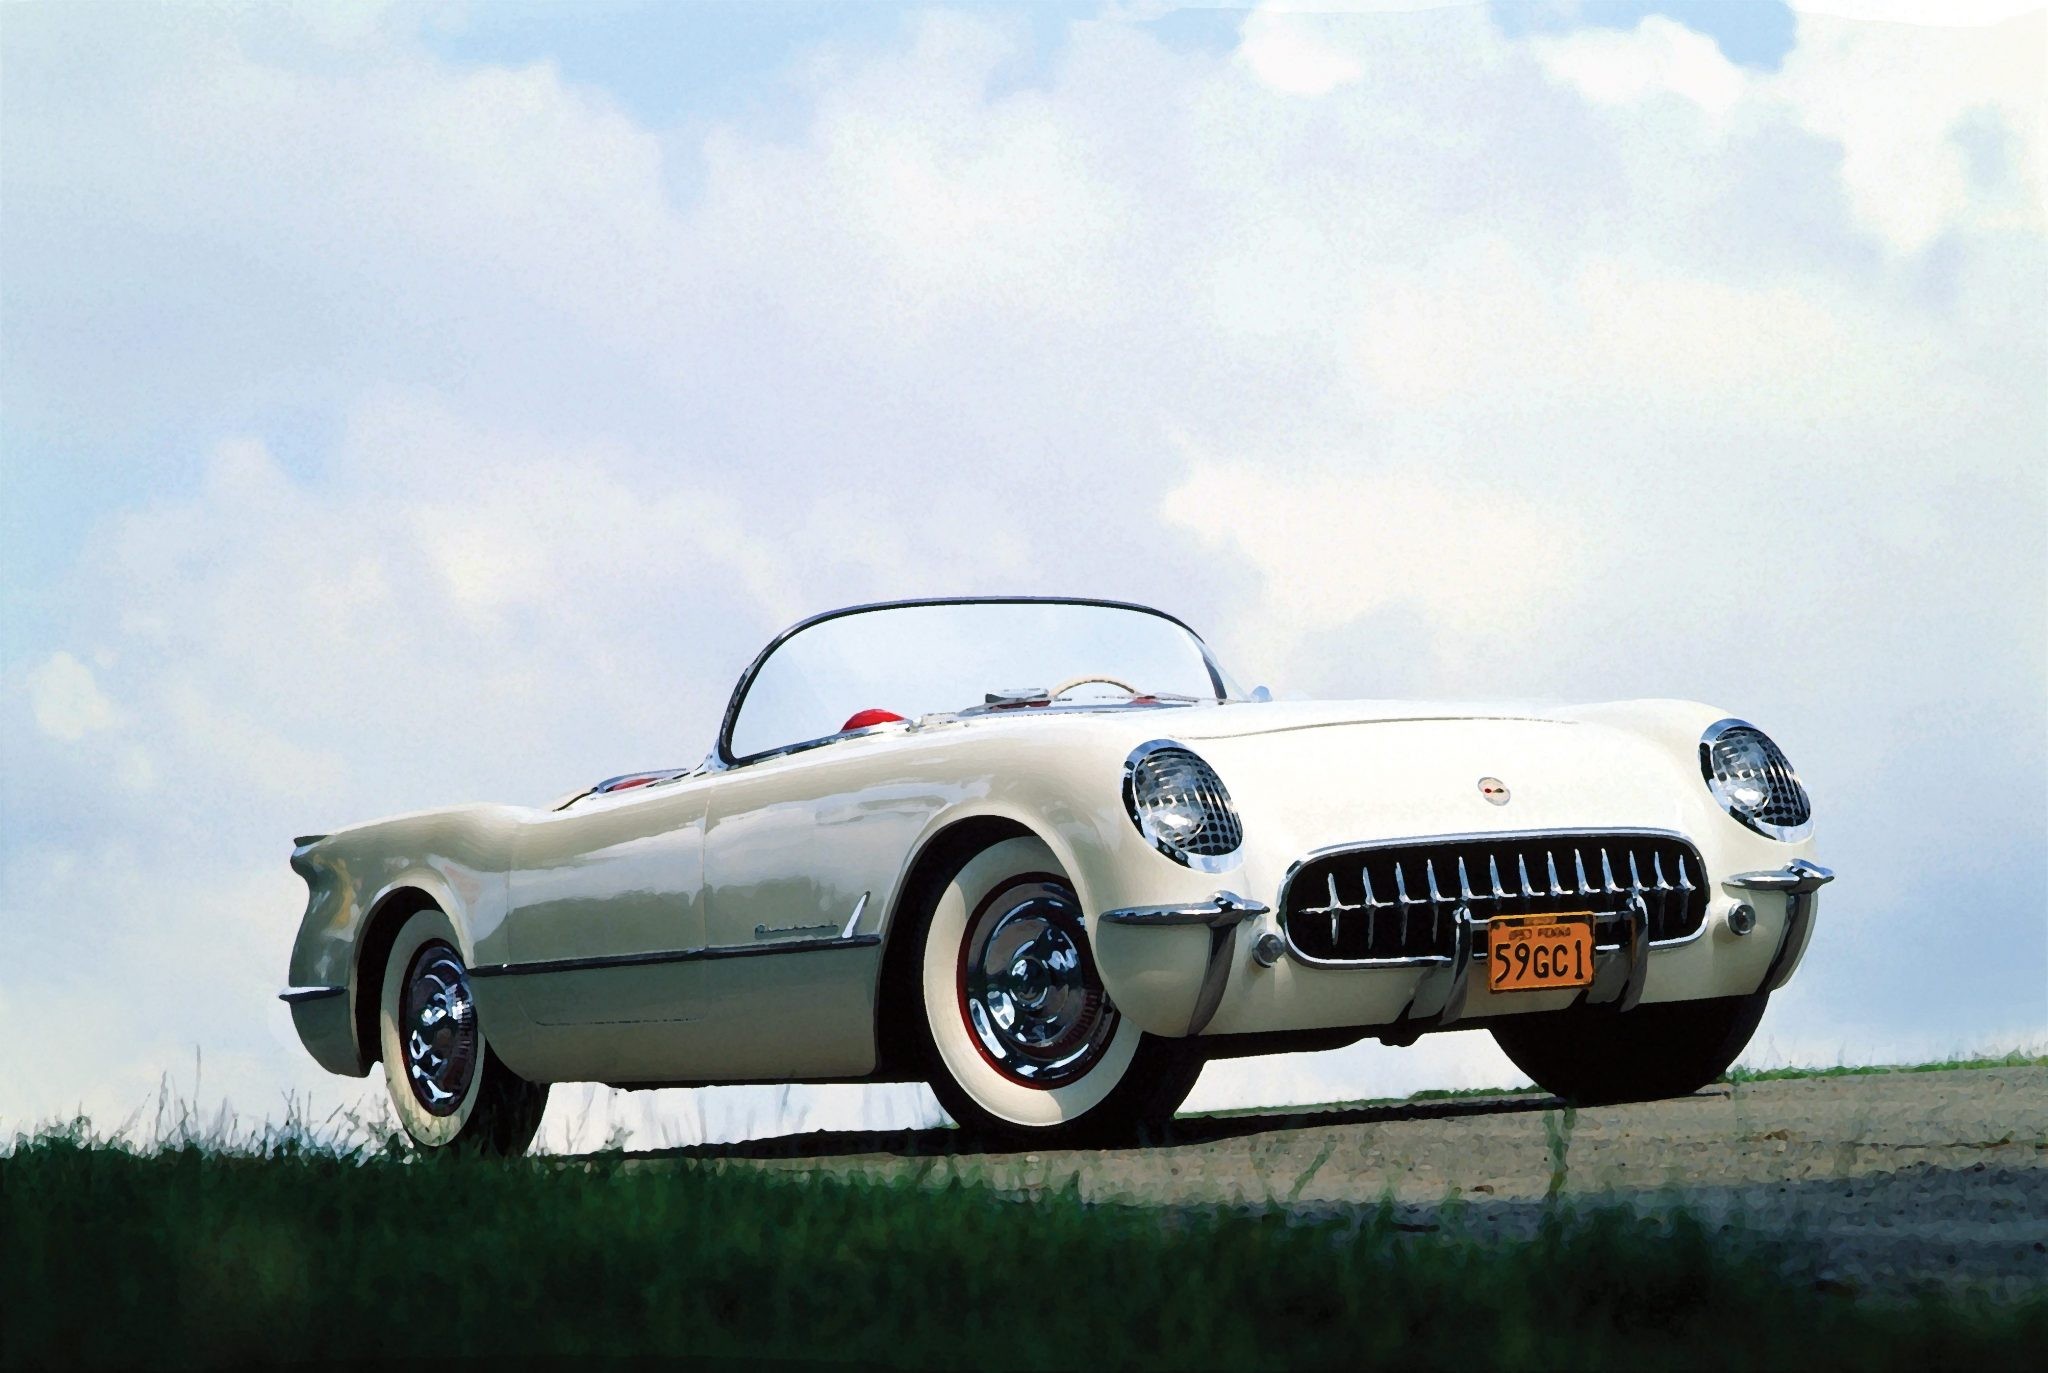 1953 Corvette Designed by Harley Earl